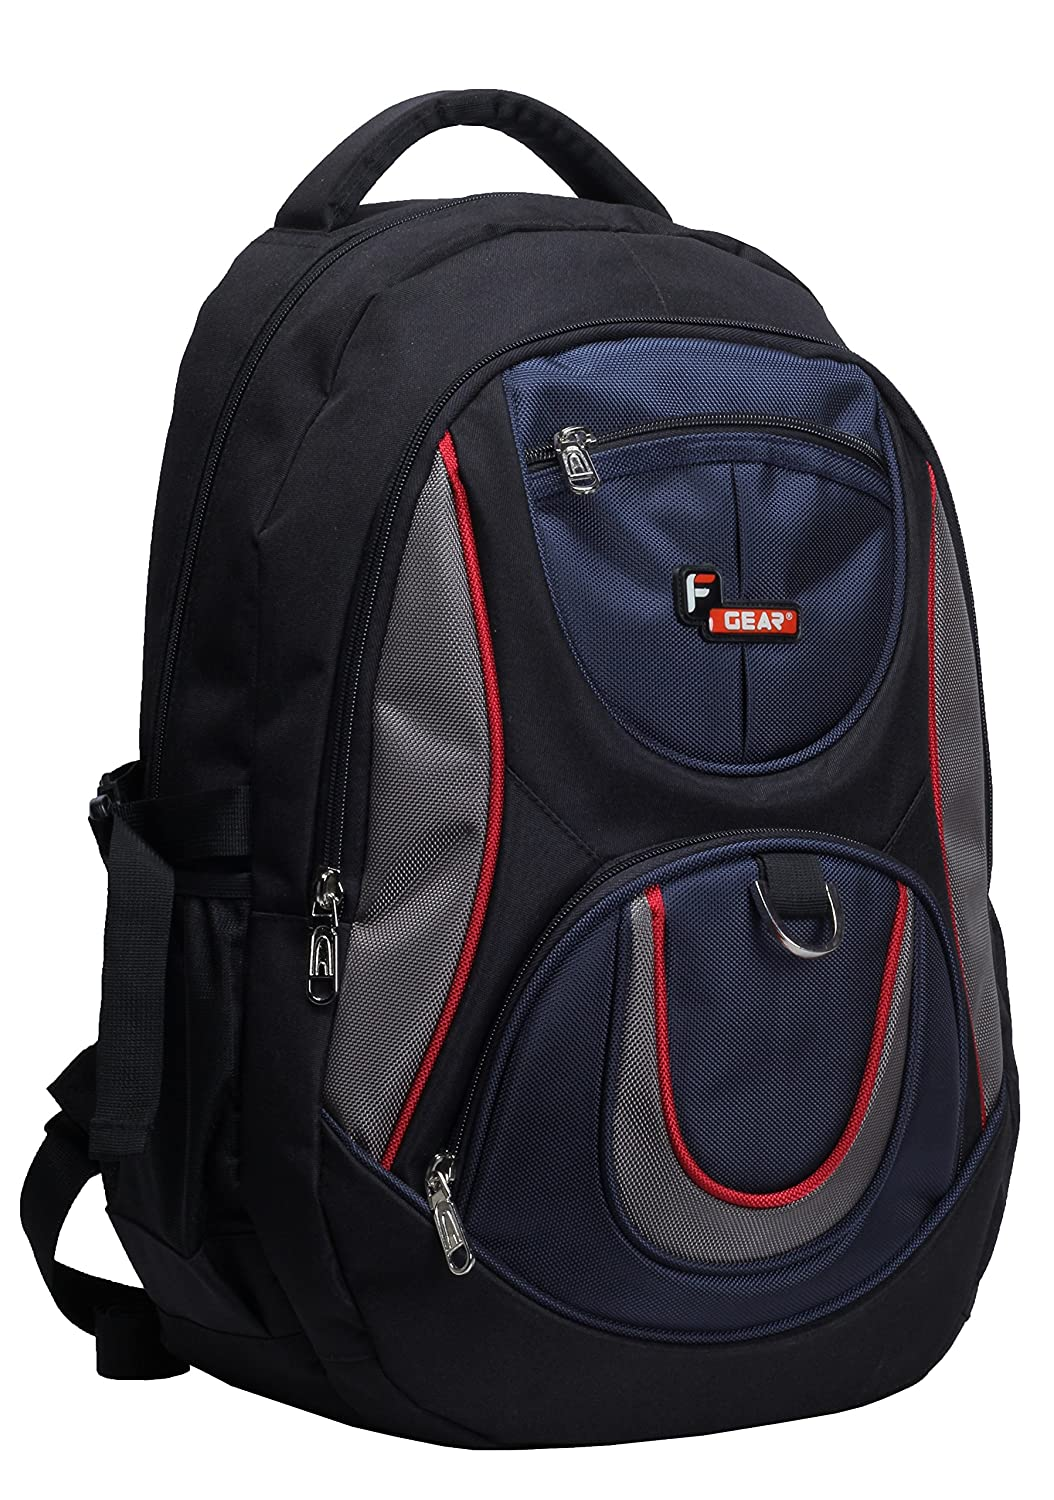 30%-60% off On Branded Backpacks By Amazon | F Gear Polyester 29Litres Black Blue School Bag @ Rs.740